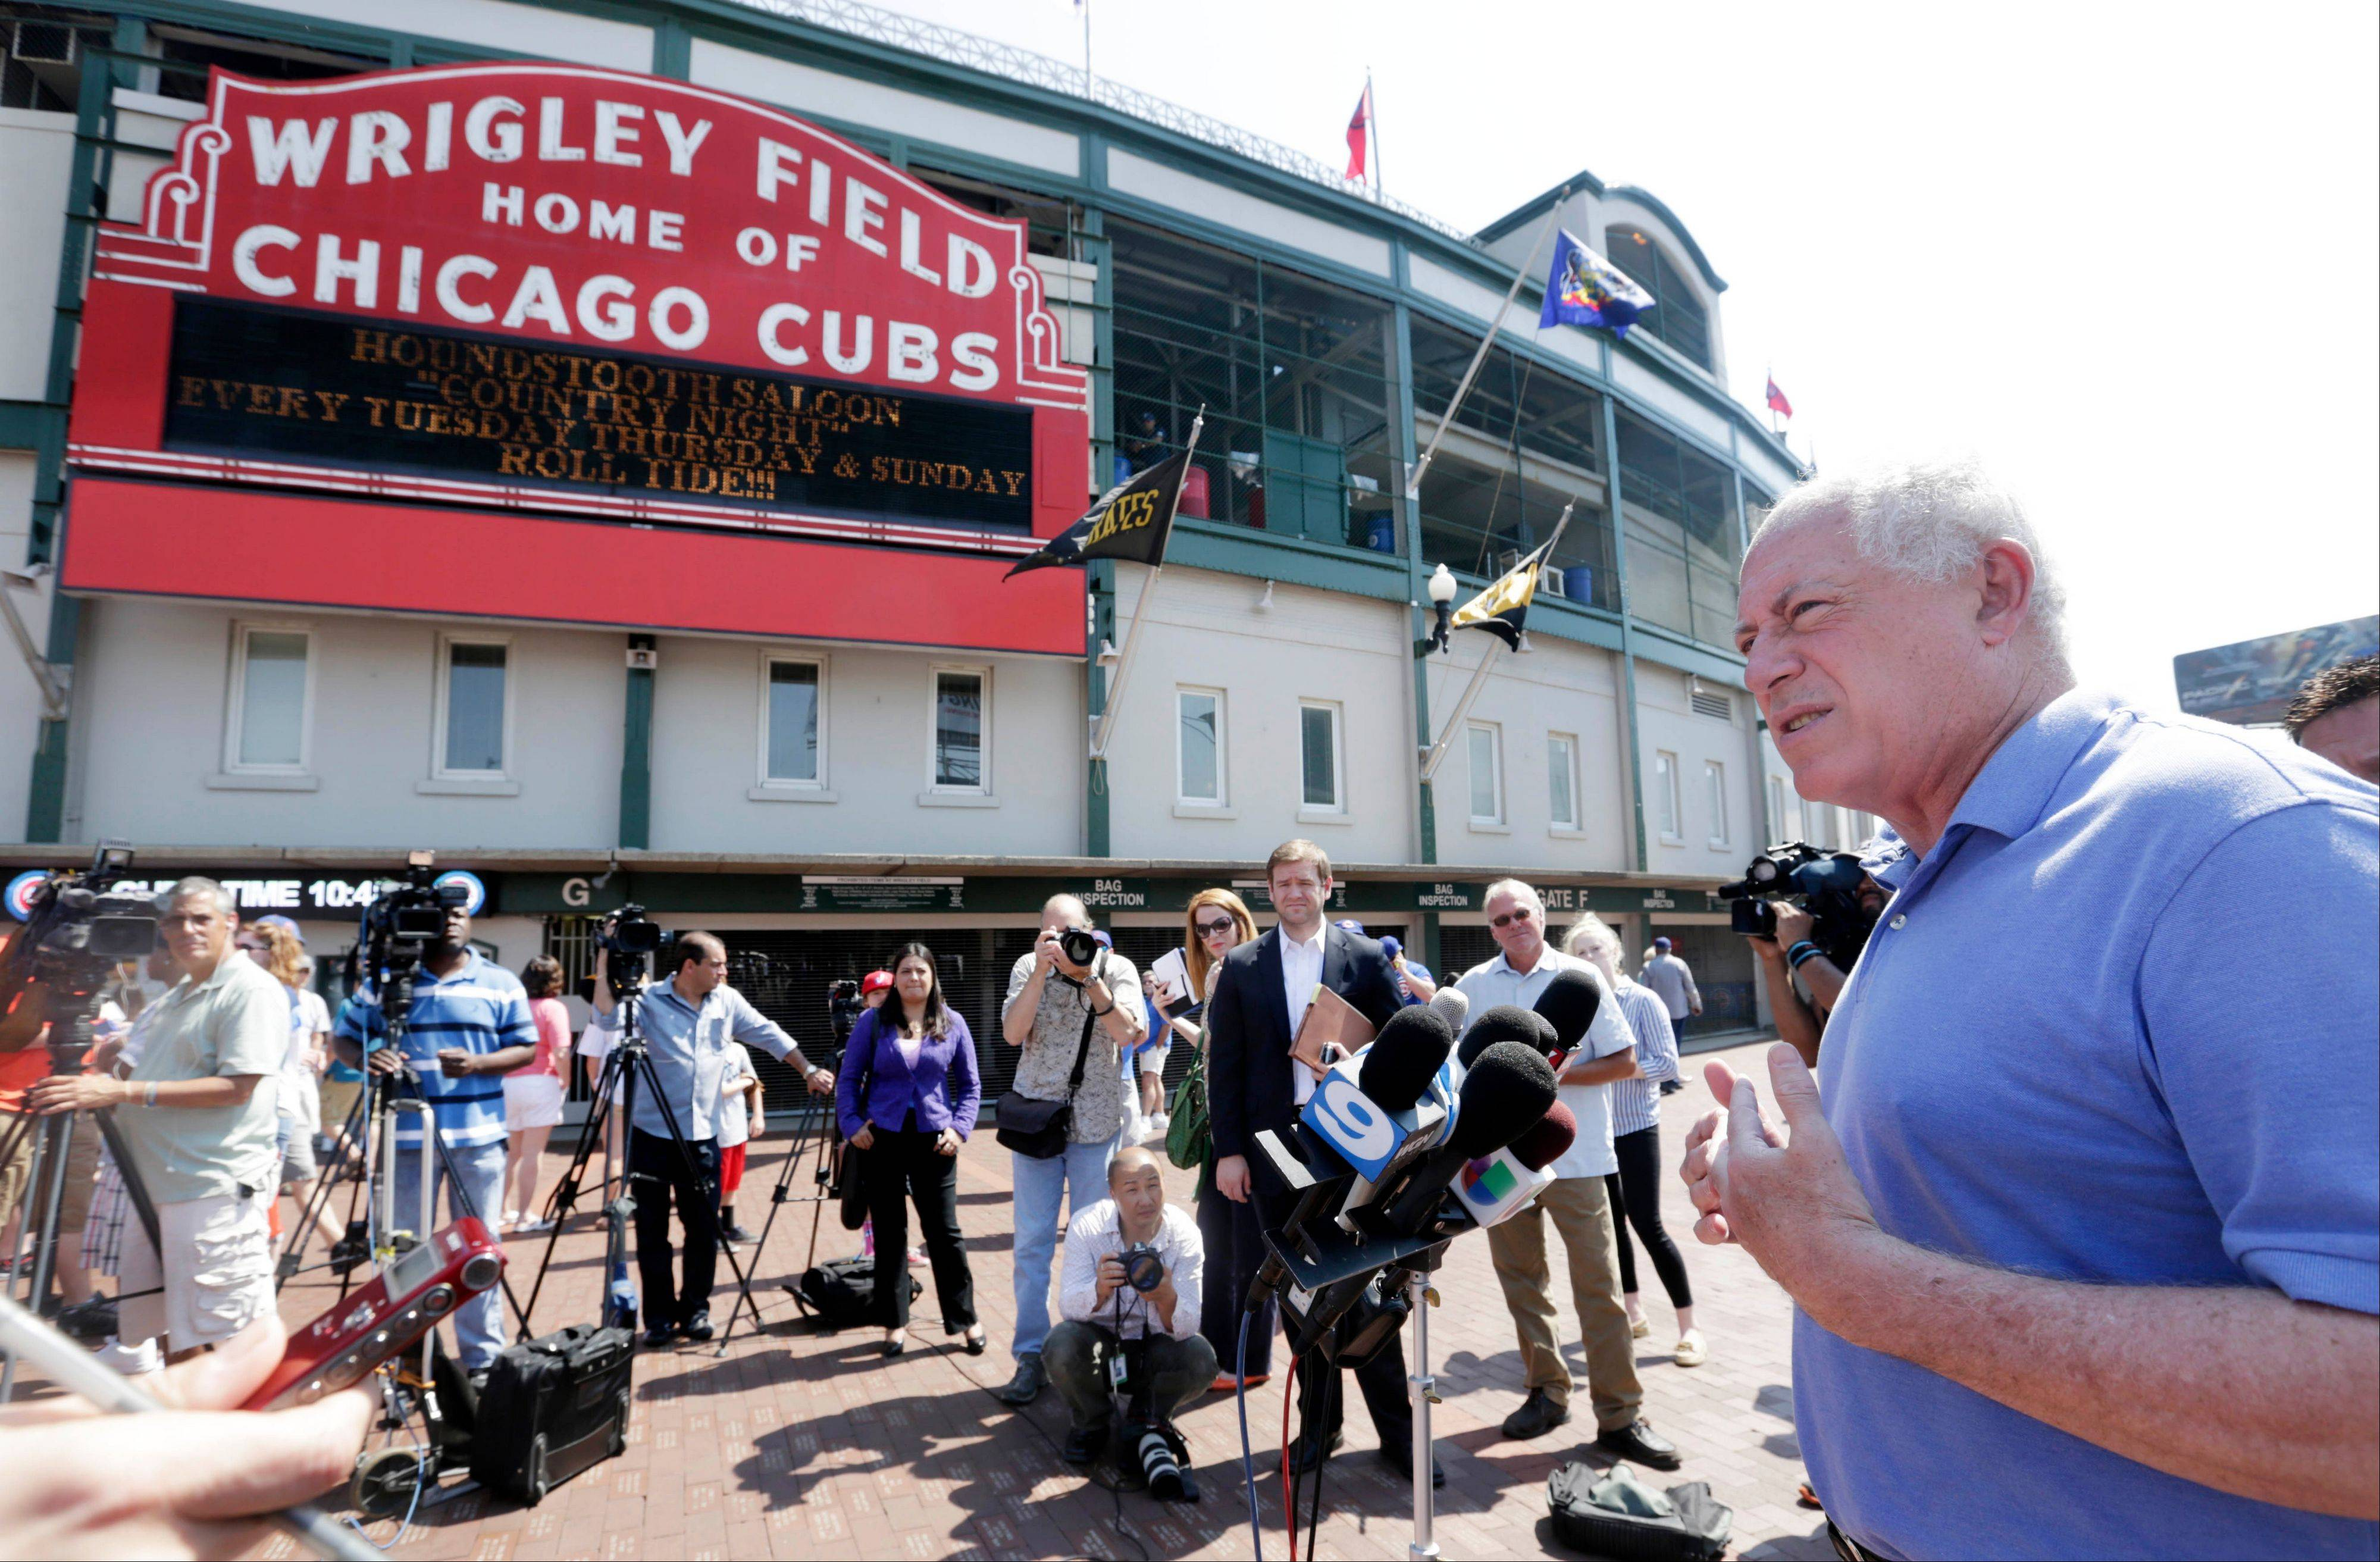 Gov. Pat Quinn speaks to the media outside Wrigley Field, standing with the many bars and restaurants of Chicago�s Wrigleyville neighborhood as a backdrop, on Friday in Chicago. Quinn visited one of Illinois� most popular entertainment districts to press his message that guns and alcohol are a �toxic mix.�